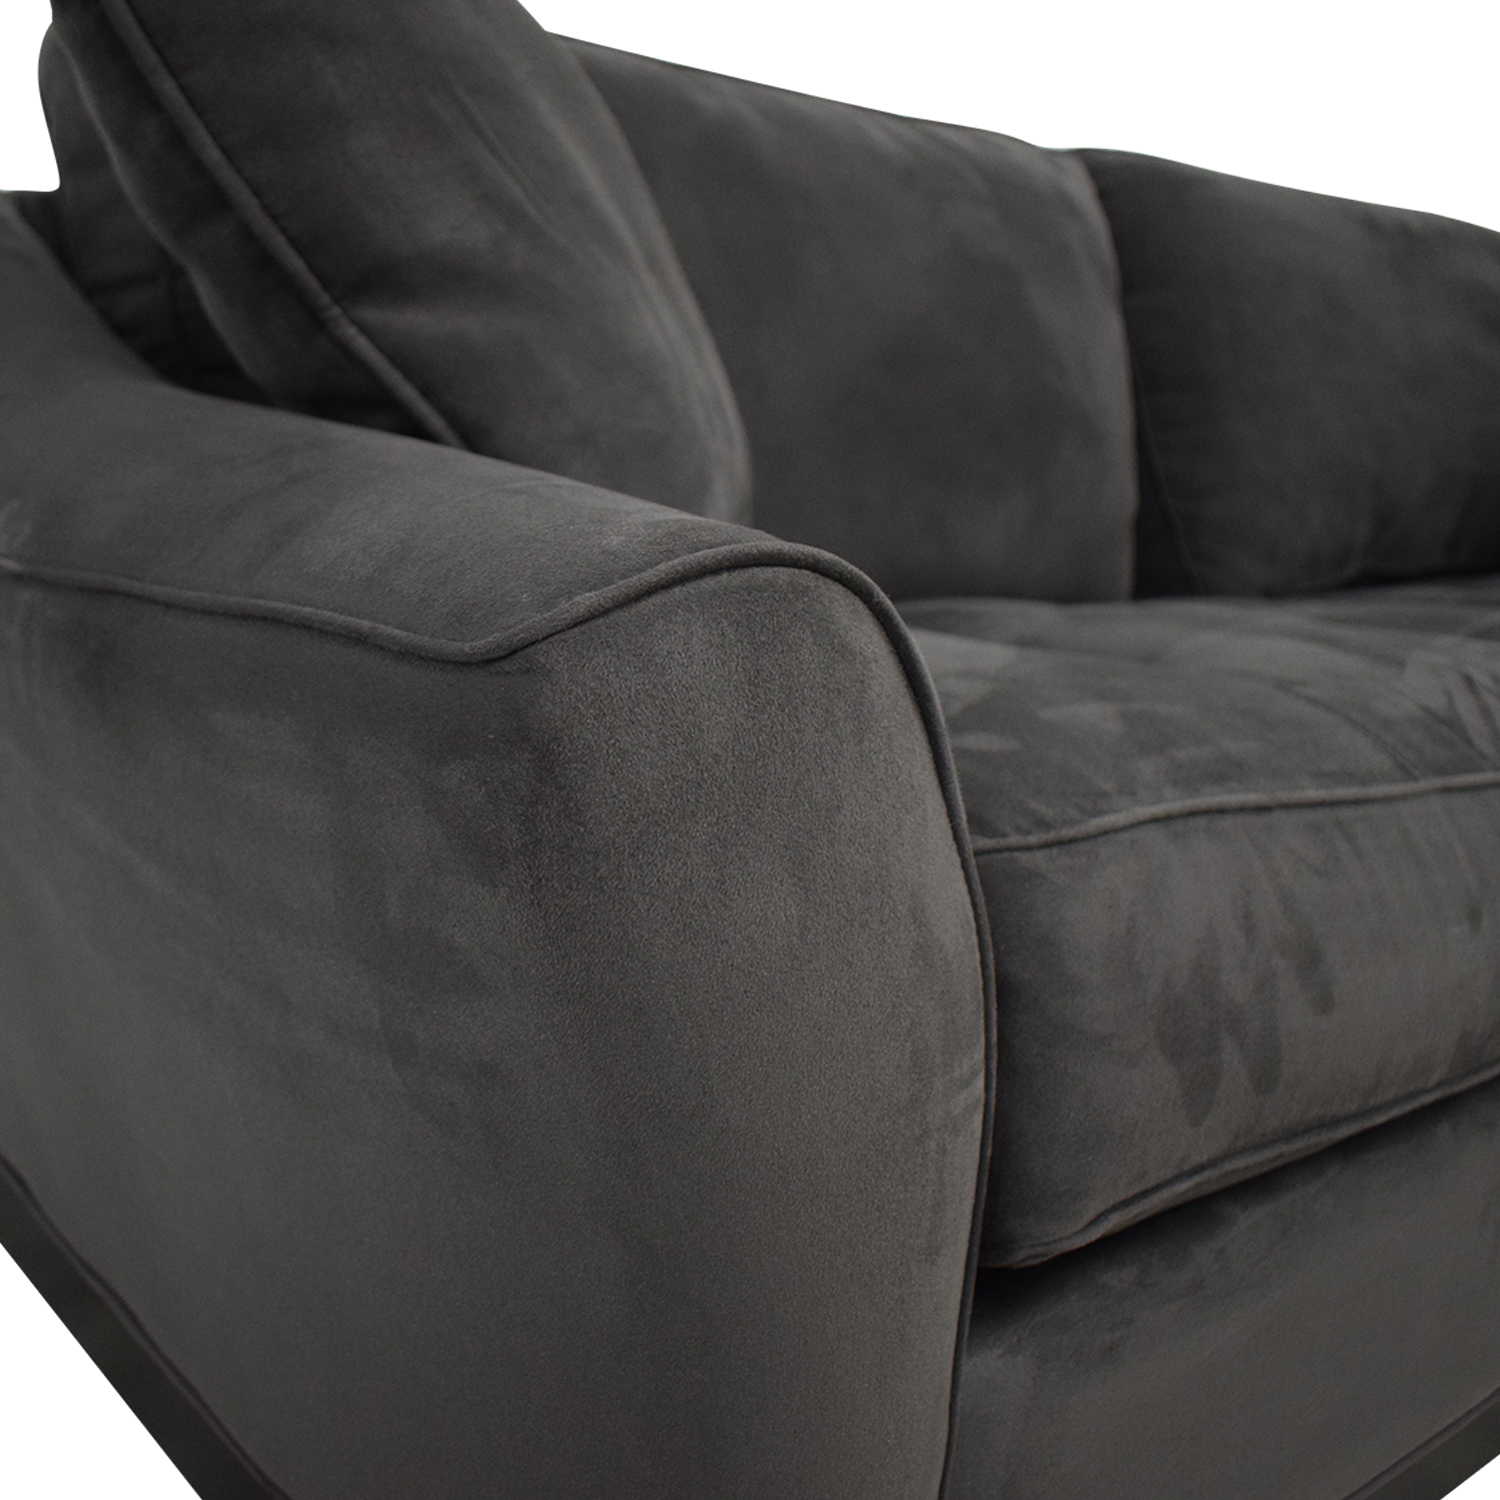 HM Richards Furniture HM Richards Sofa Bed coupon